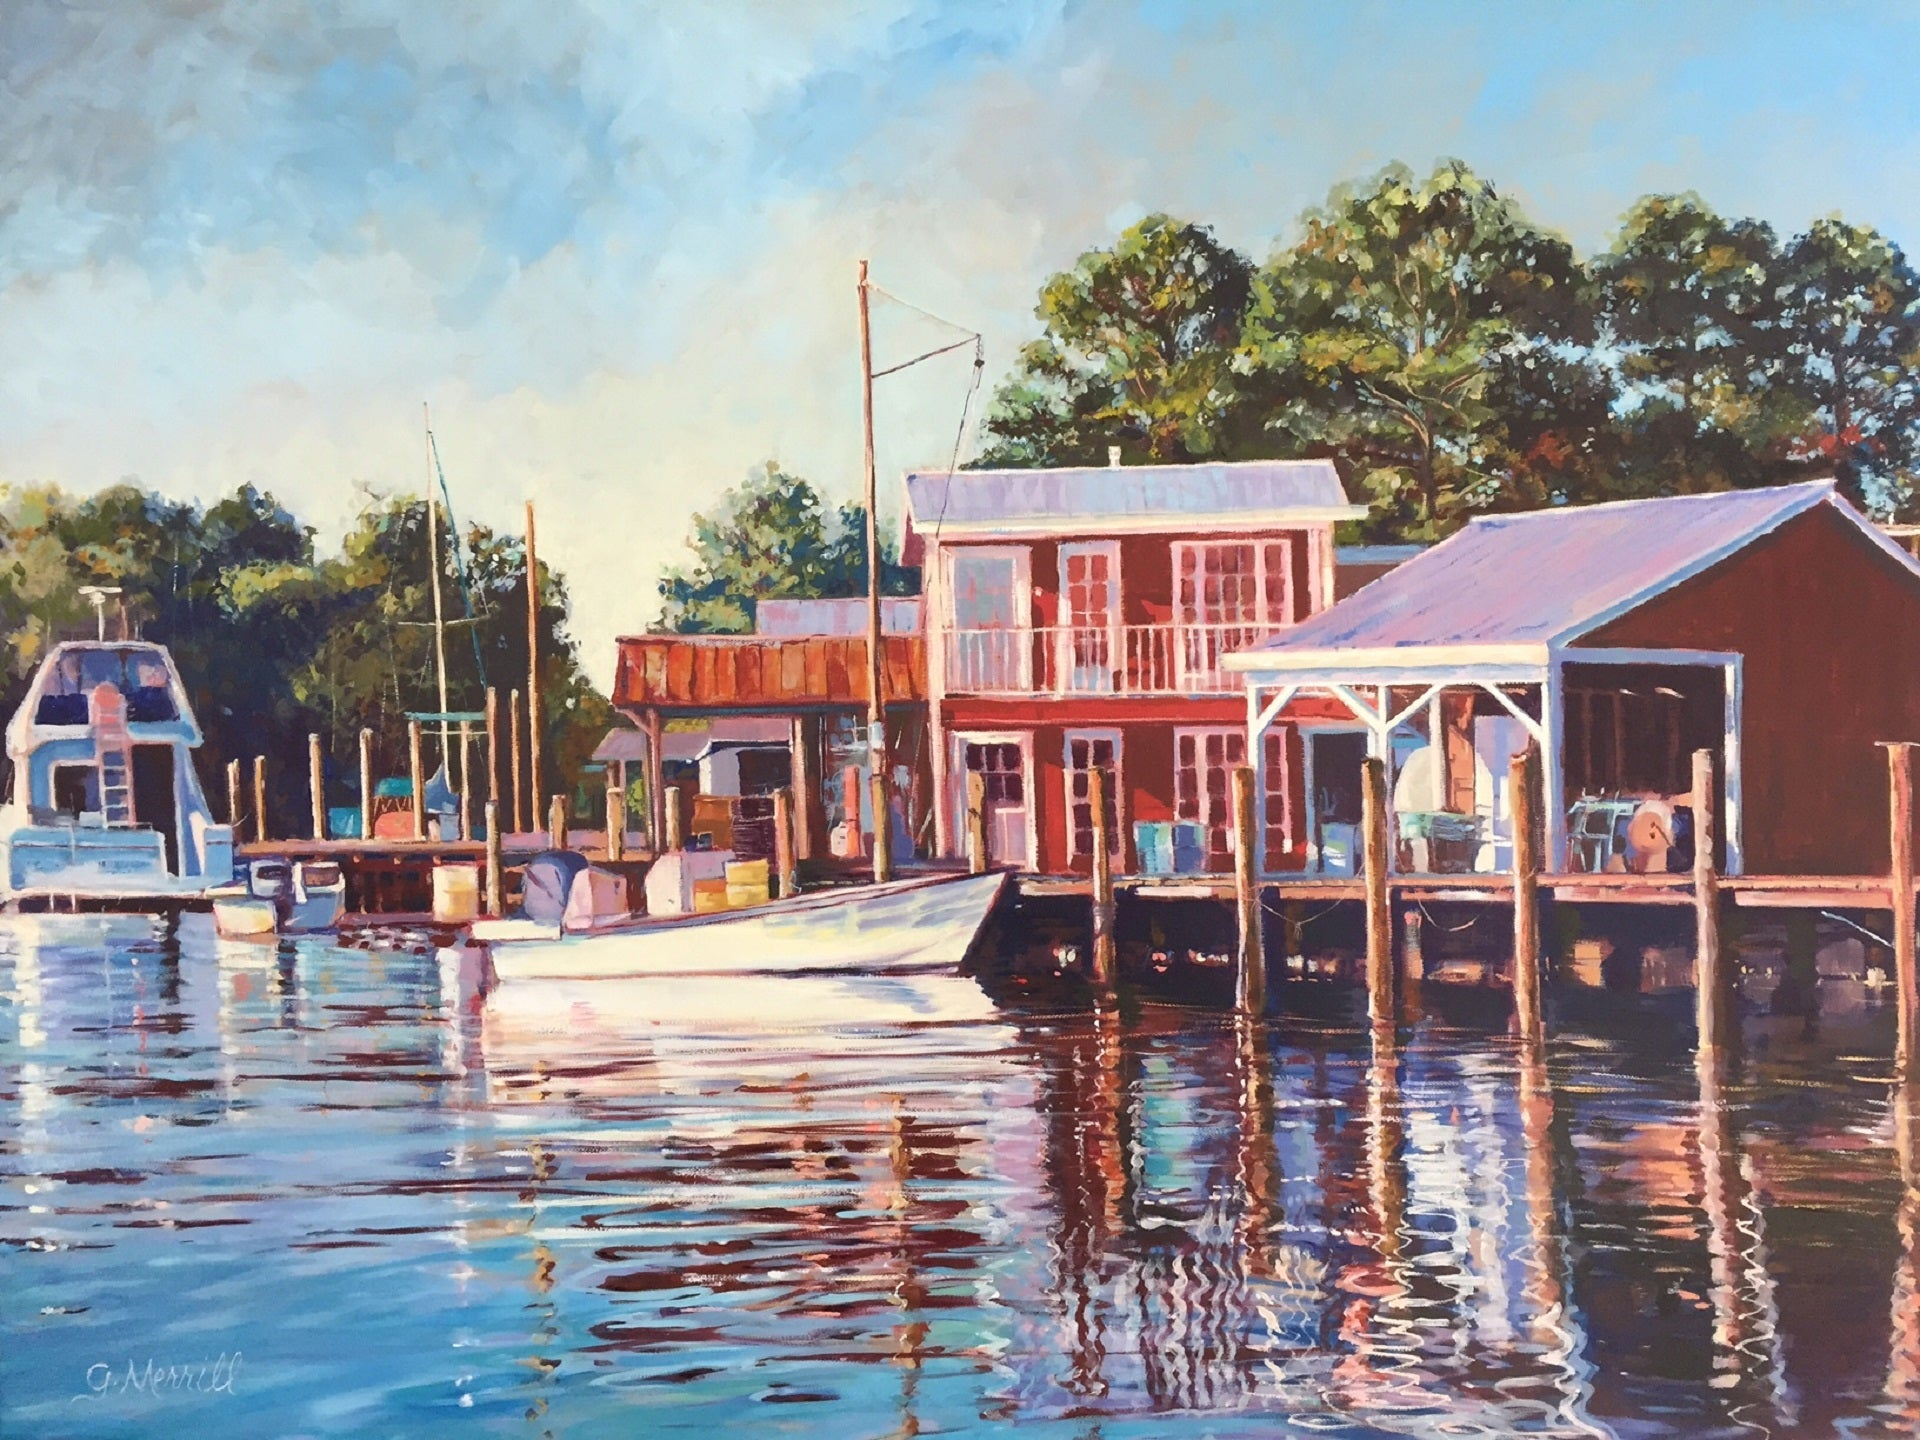 Gayle Merrill - Marina at Davis Creek